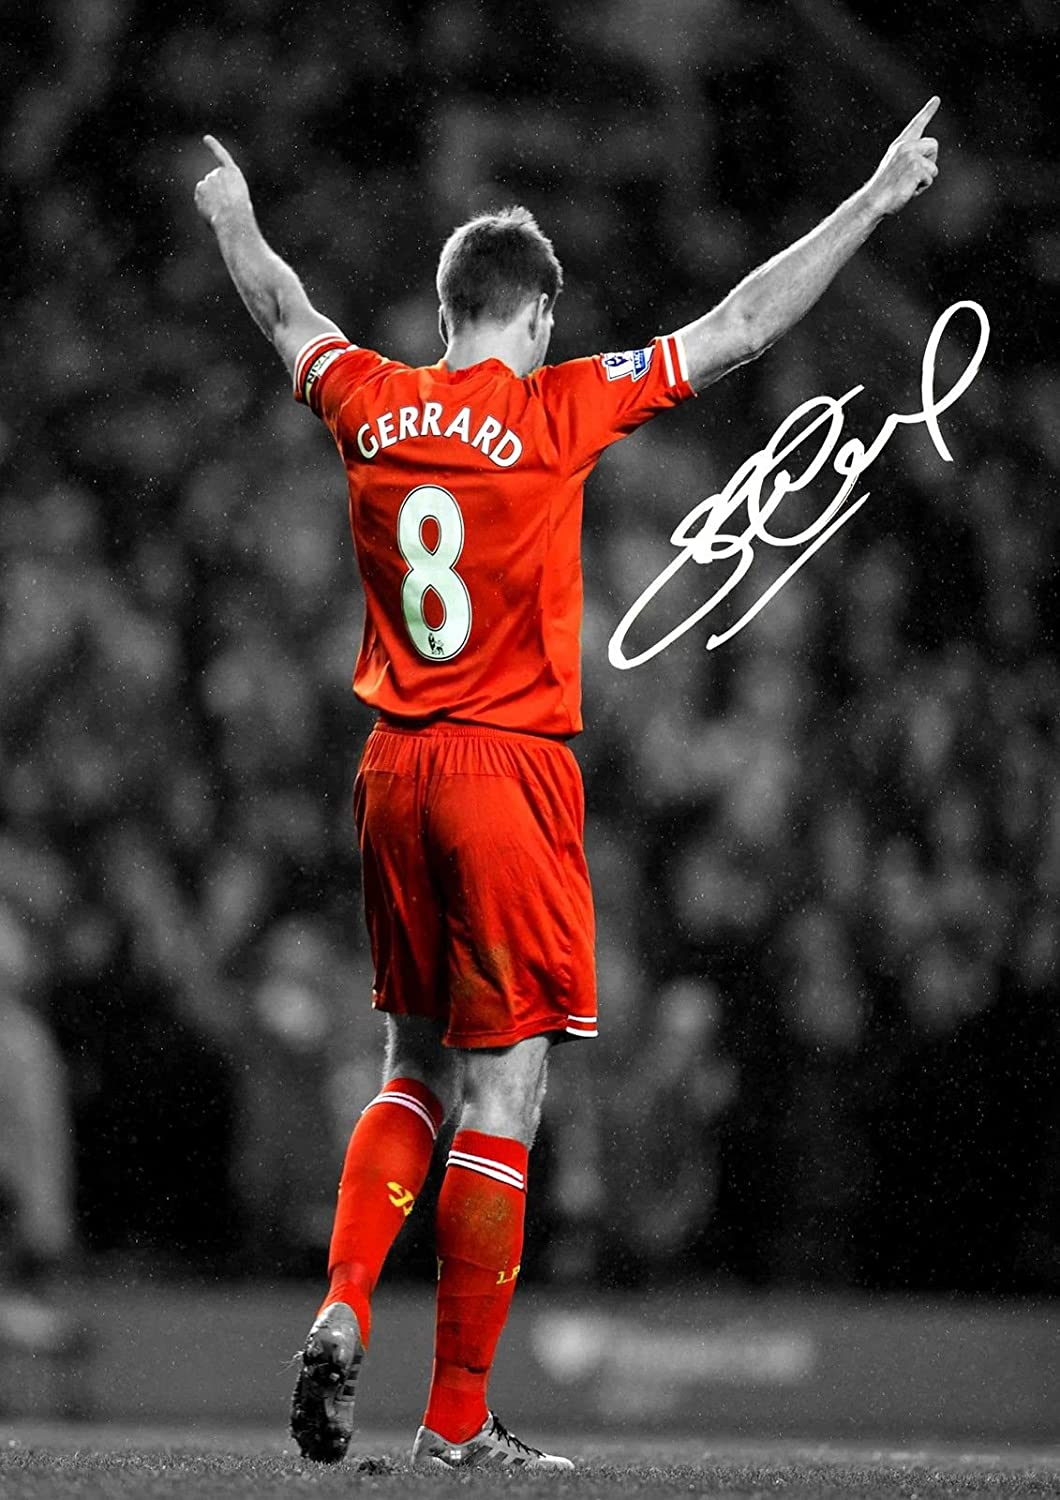 Signed 12x8 Black Soccer Steven Gerrard Liverpool FC Autographed Photo Photograph Picture Frame Gift A4